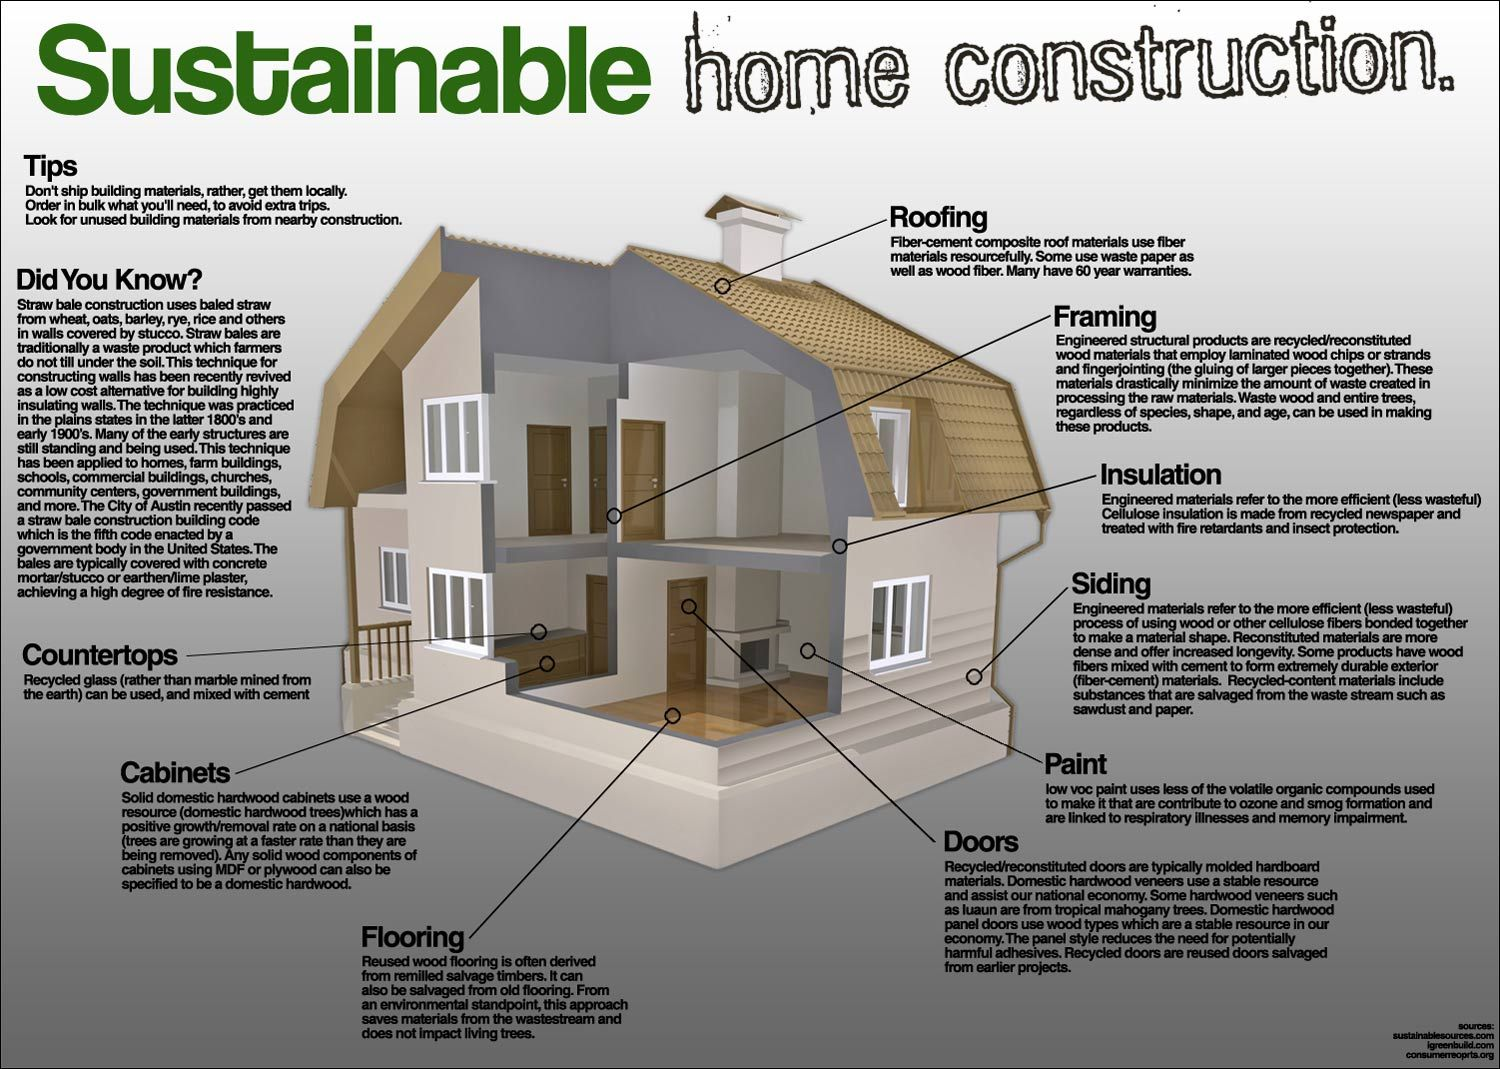 How Do You Build The Most Sustainable Home Sustainability Sustainable Home Sustainable House Design Home Construction